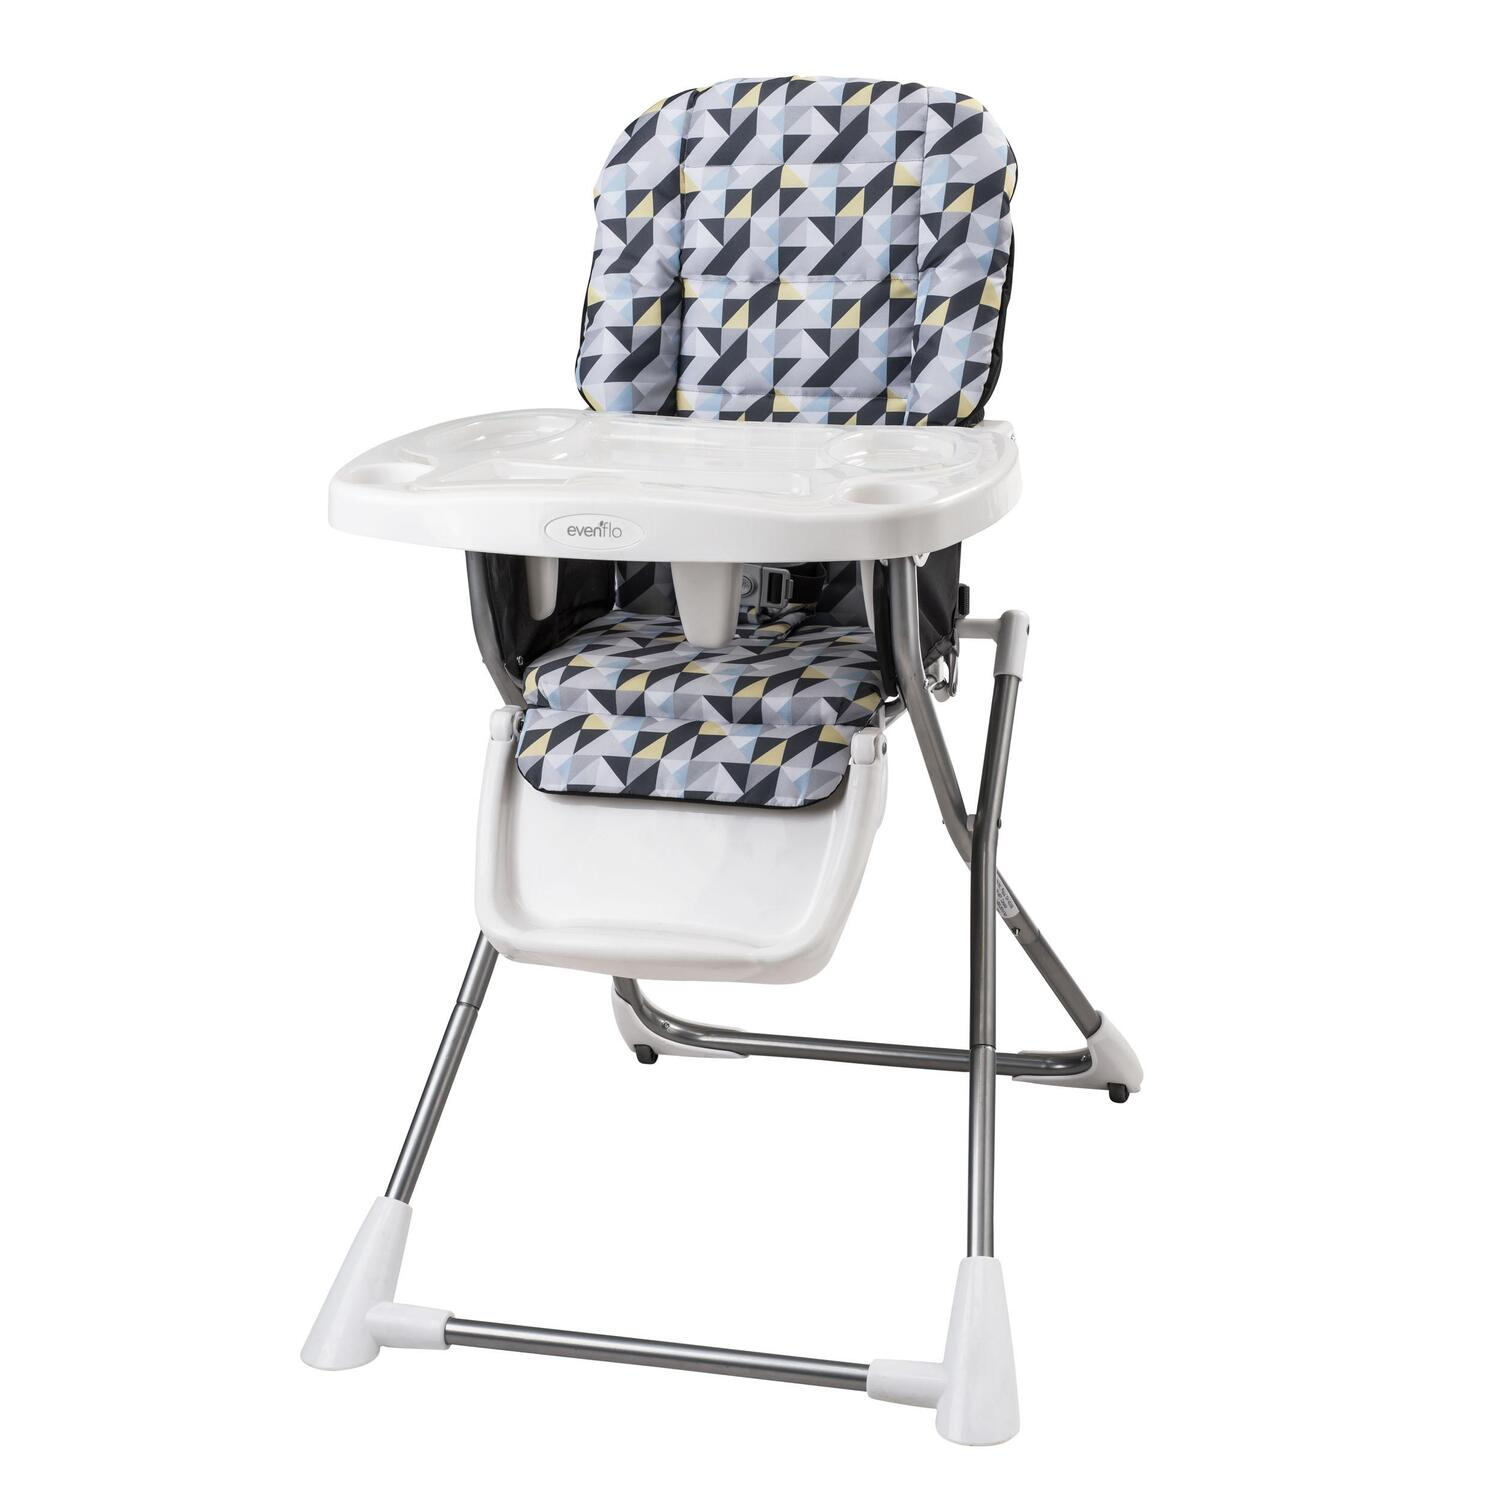 Evenflo Compact Fold High Chair by OJ Commerce $55.99